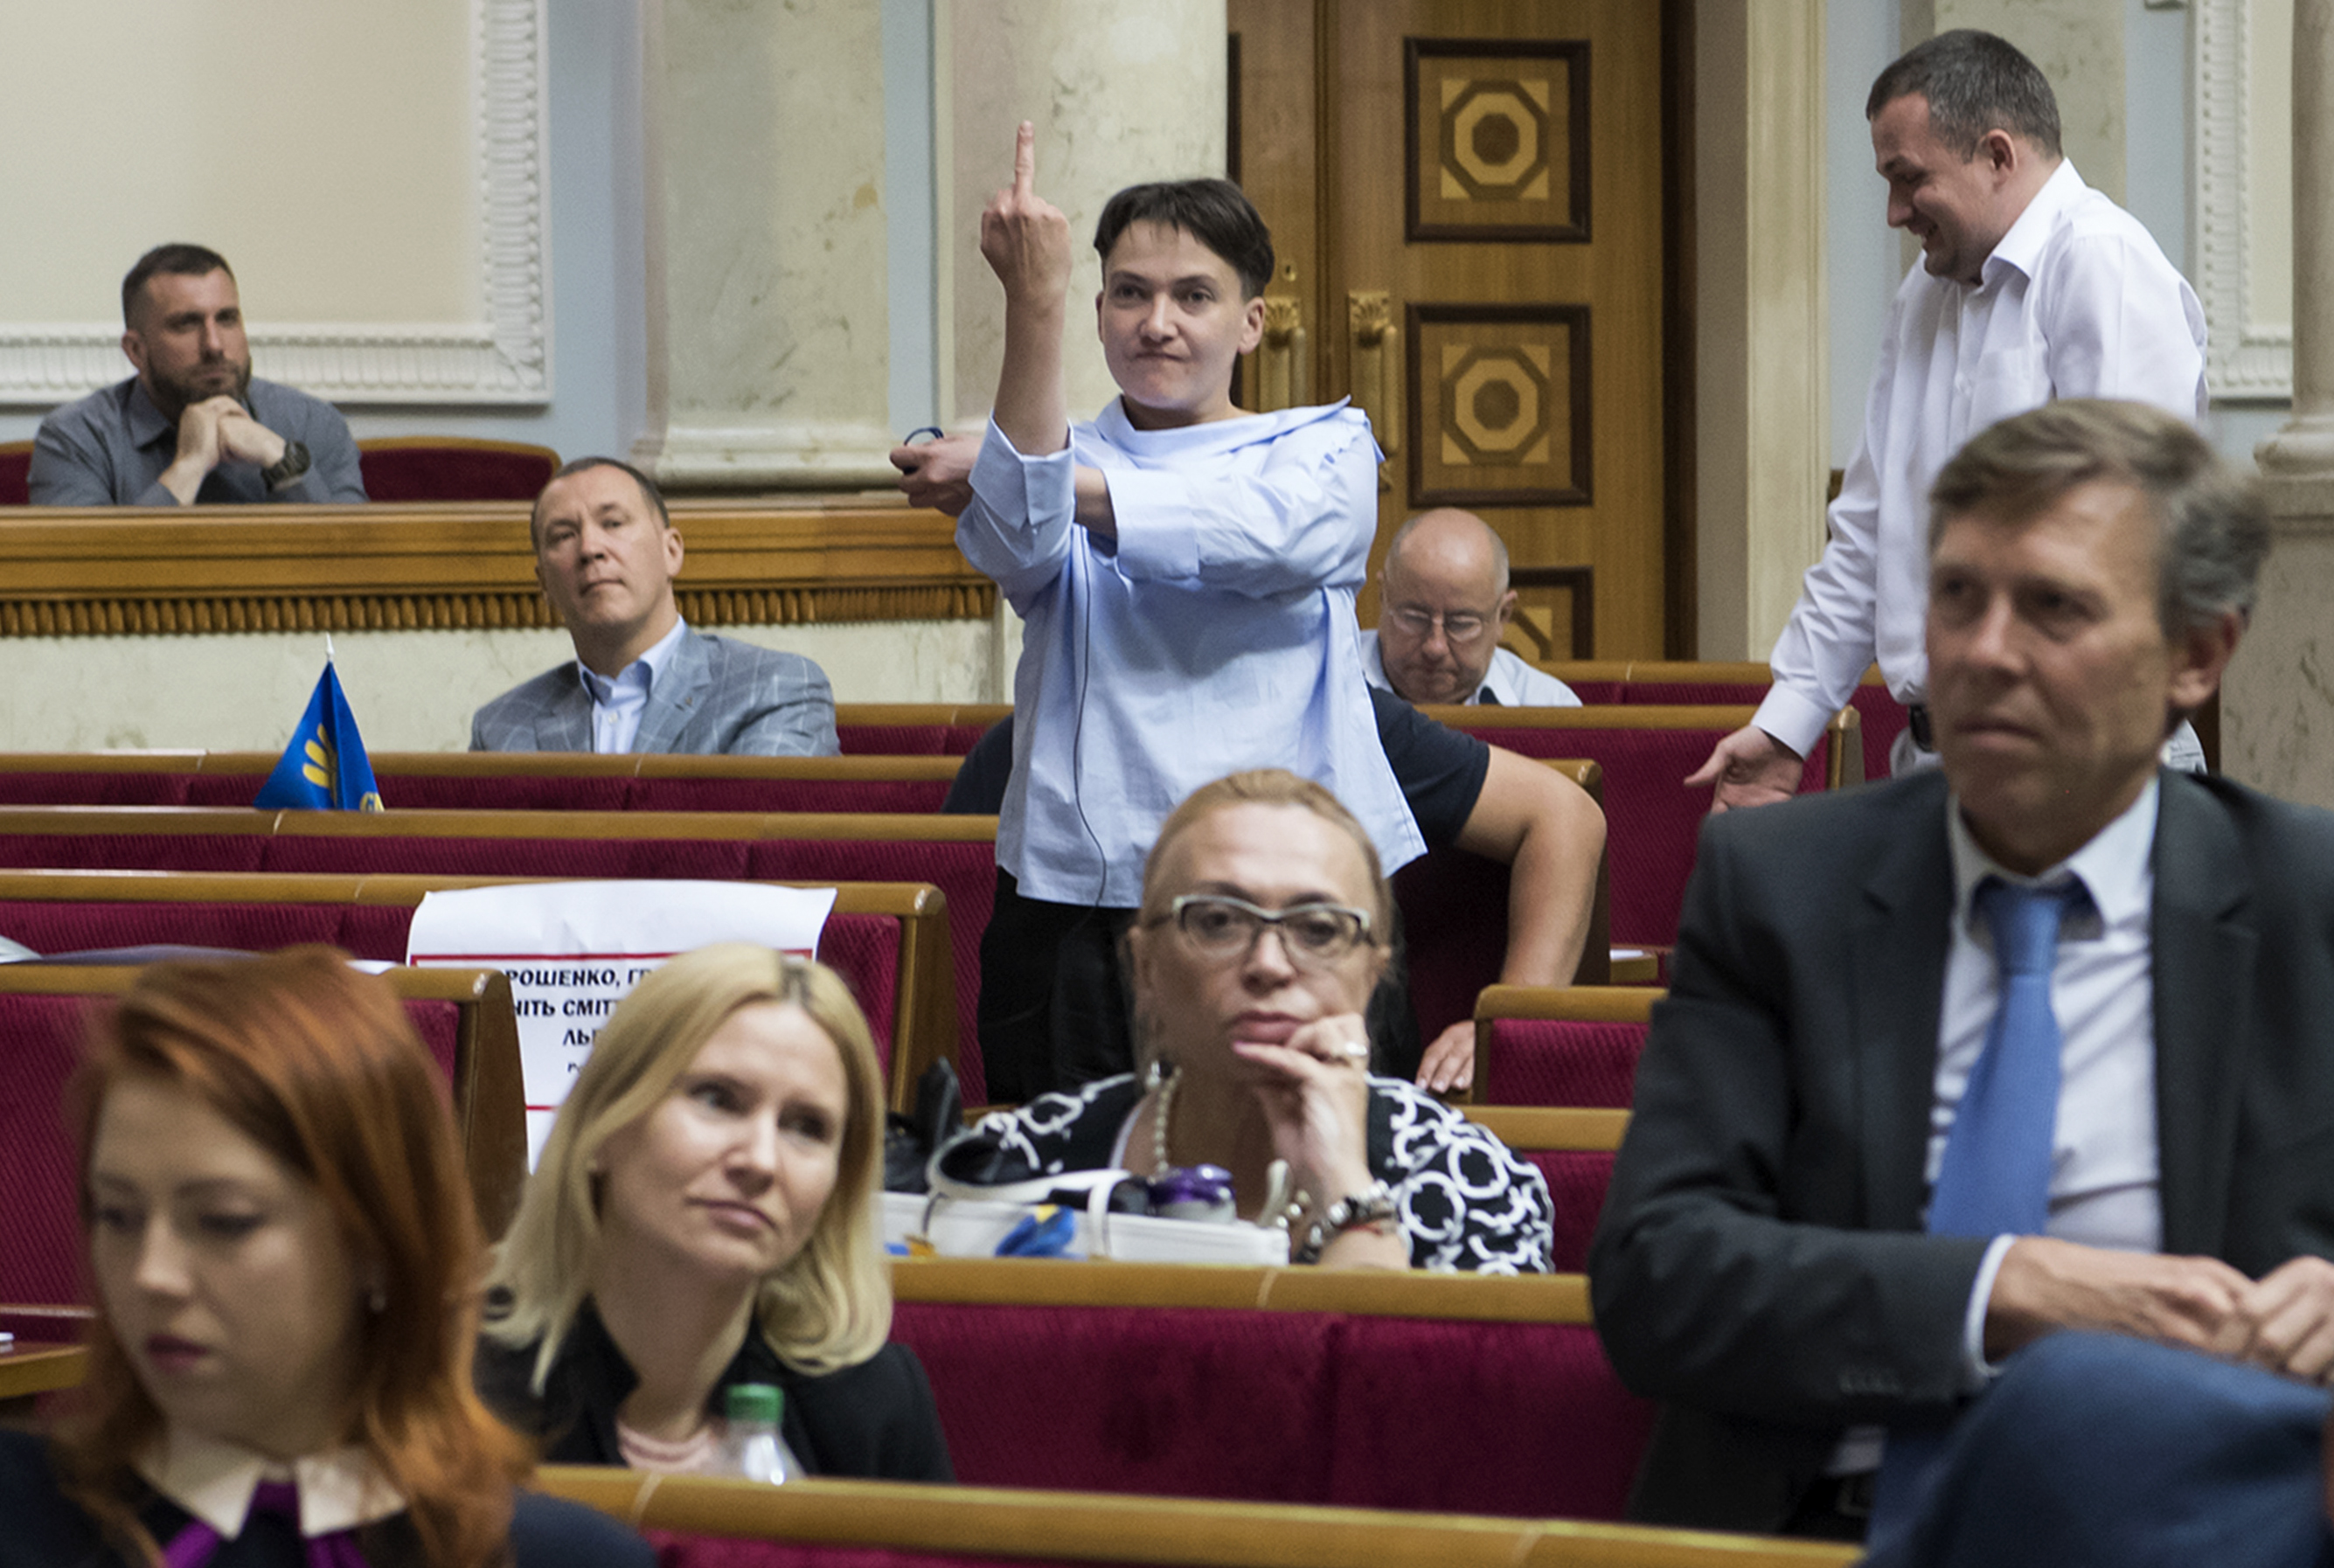 KIEV 2017-06-22 Ukrainian lawmaker Nadiya Savchenko uses the middle finger gesture as she reacts during a session of the parliament in Kiev, Ukraine June 22, 2017. REUTERS/Vladyslav Musiienko/Pool TPX IMAGES OF THE DAY Photo: / REUTERS / TT / kod 72000